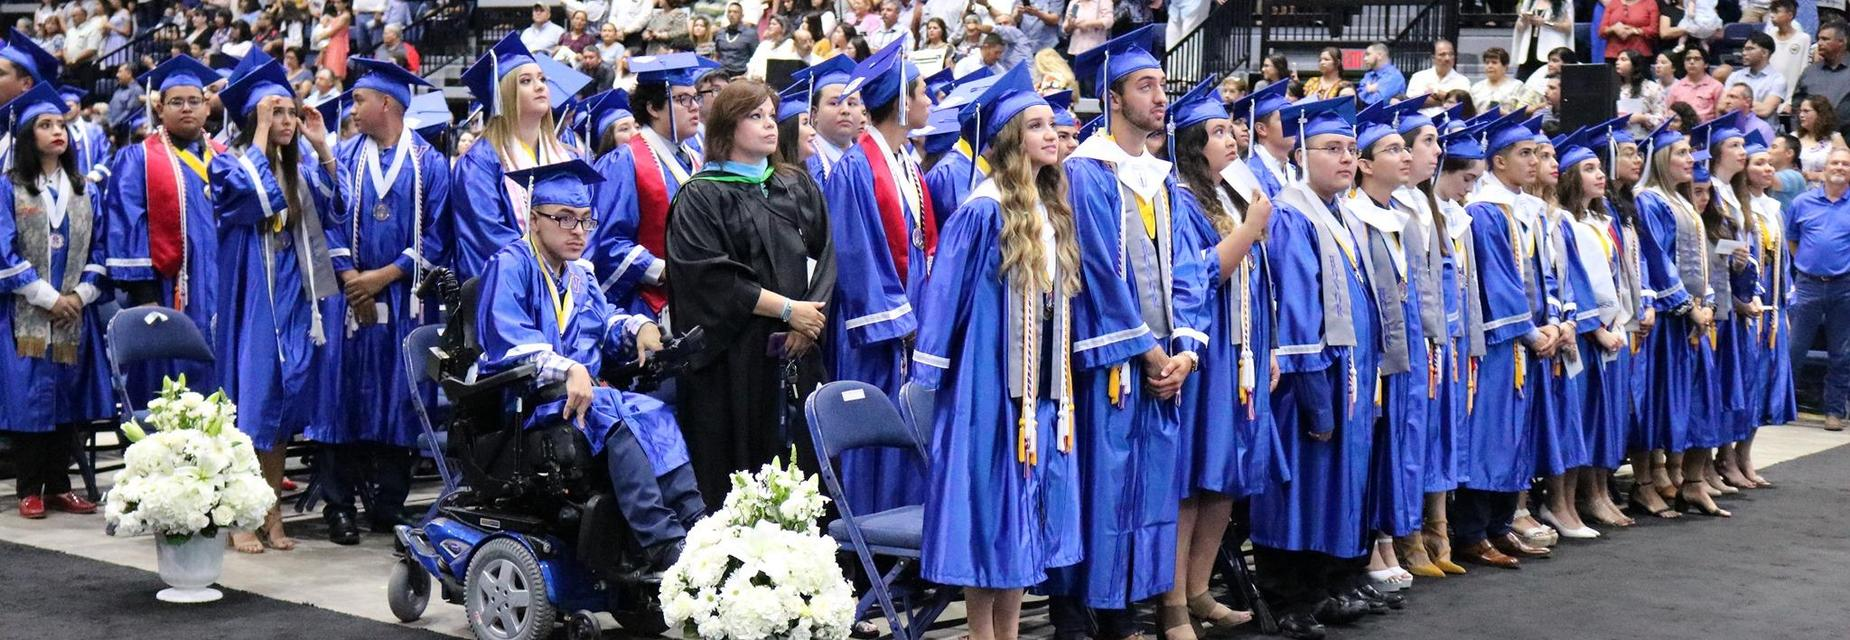 VMHS commencement picture